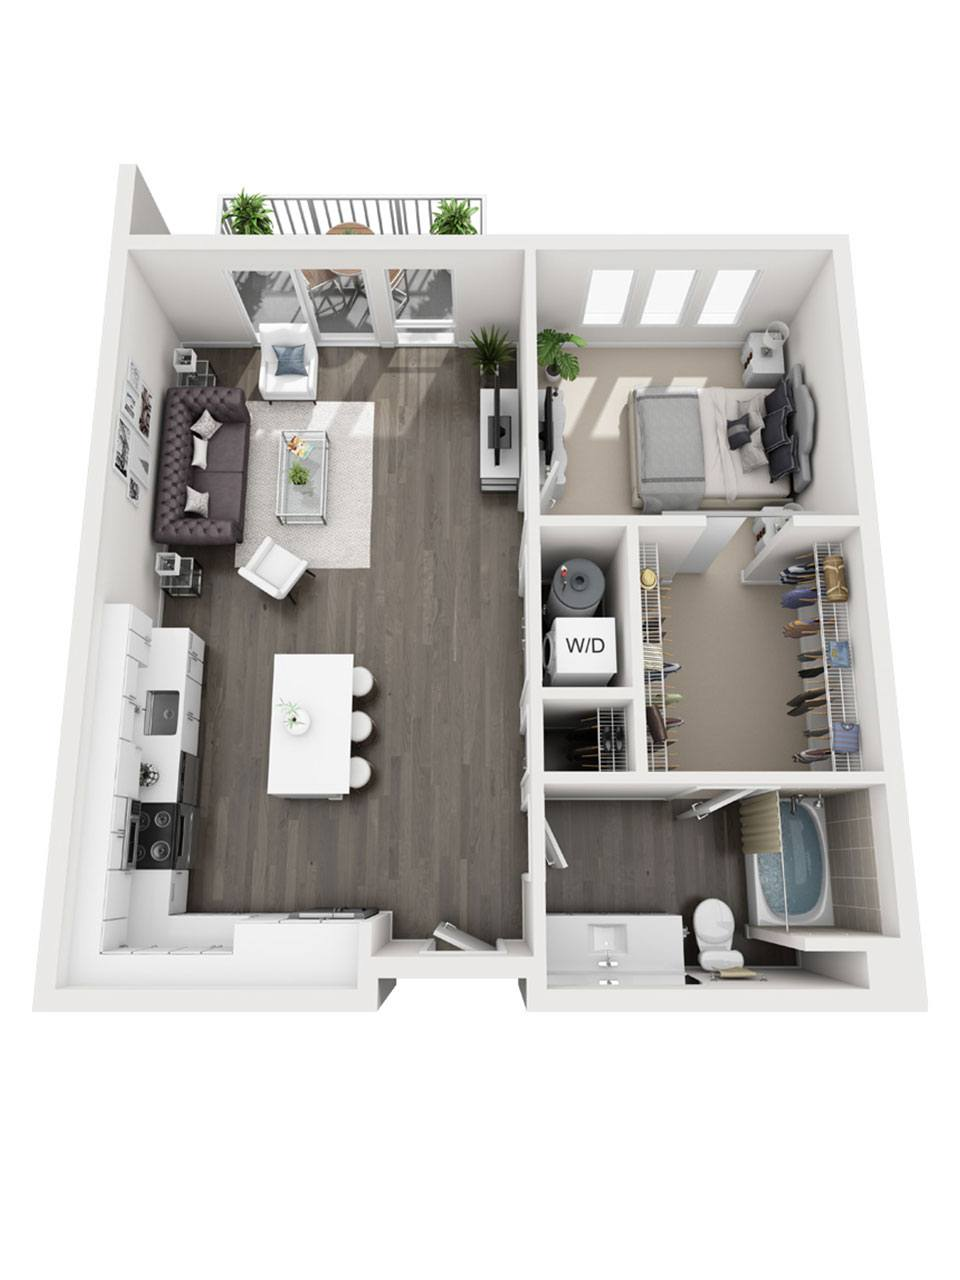 Plan 1 Bedroom – A2 | 1 Bath